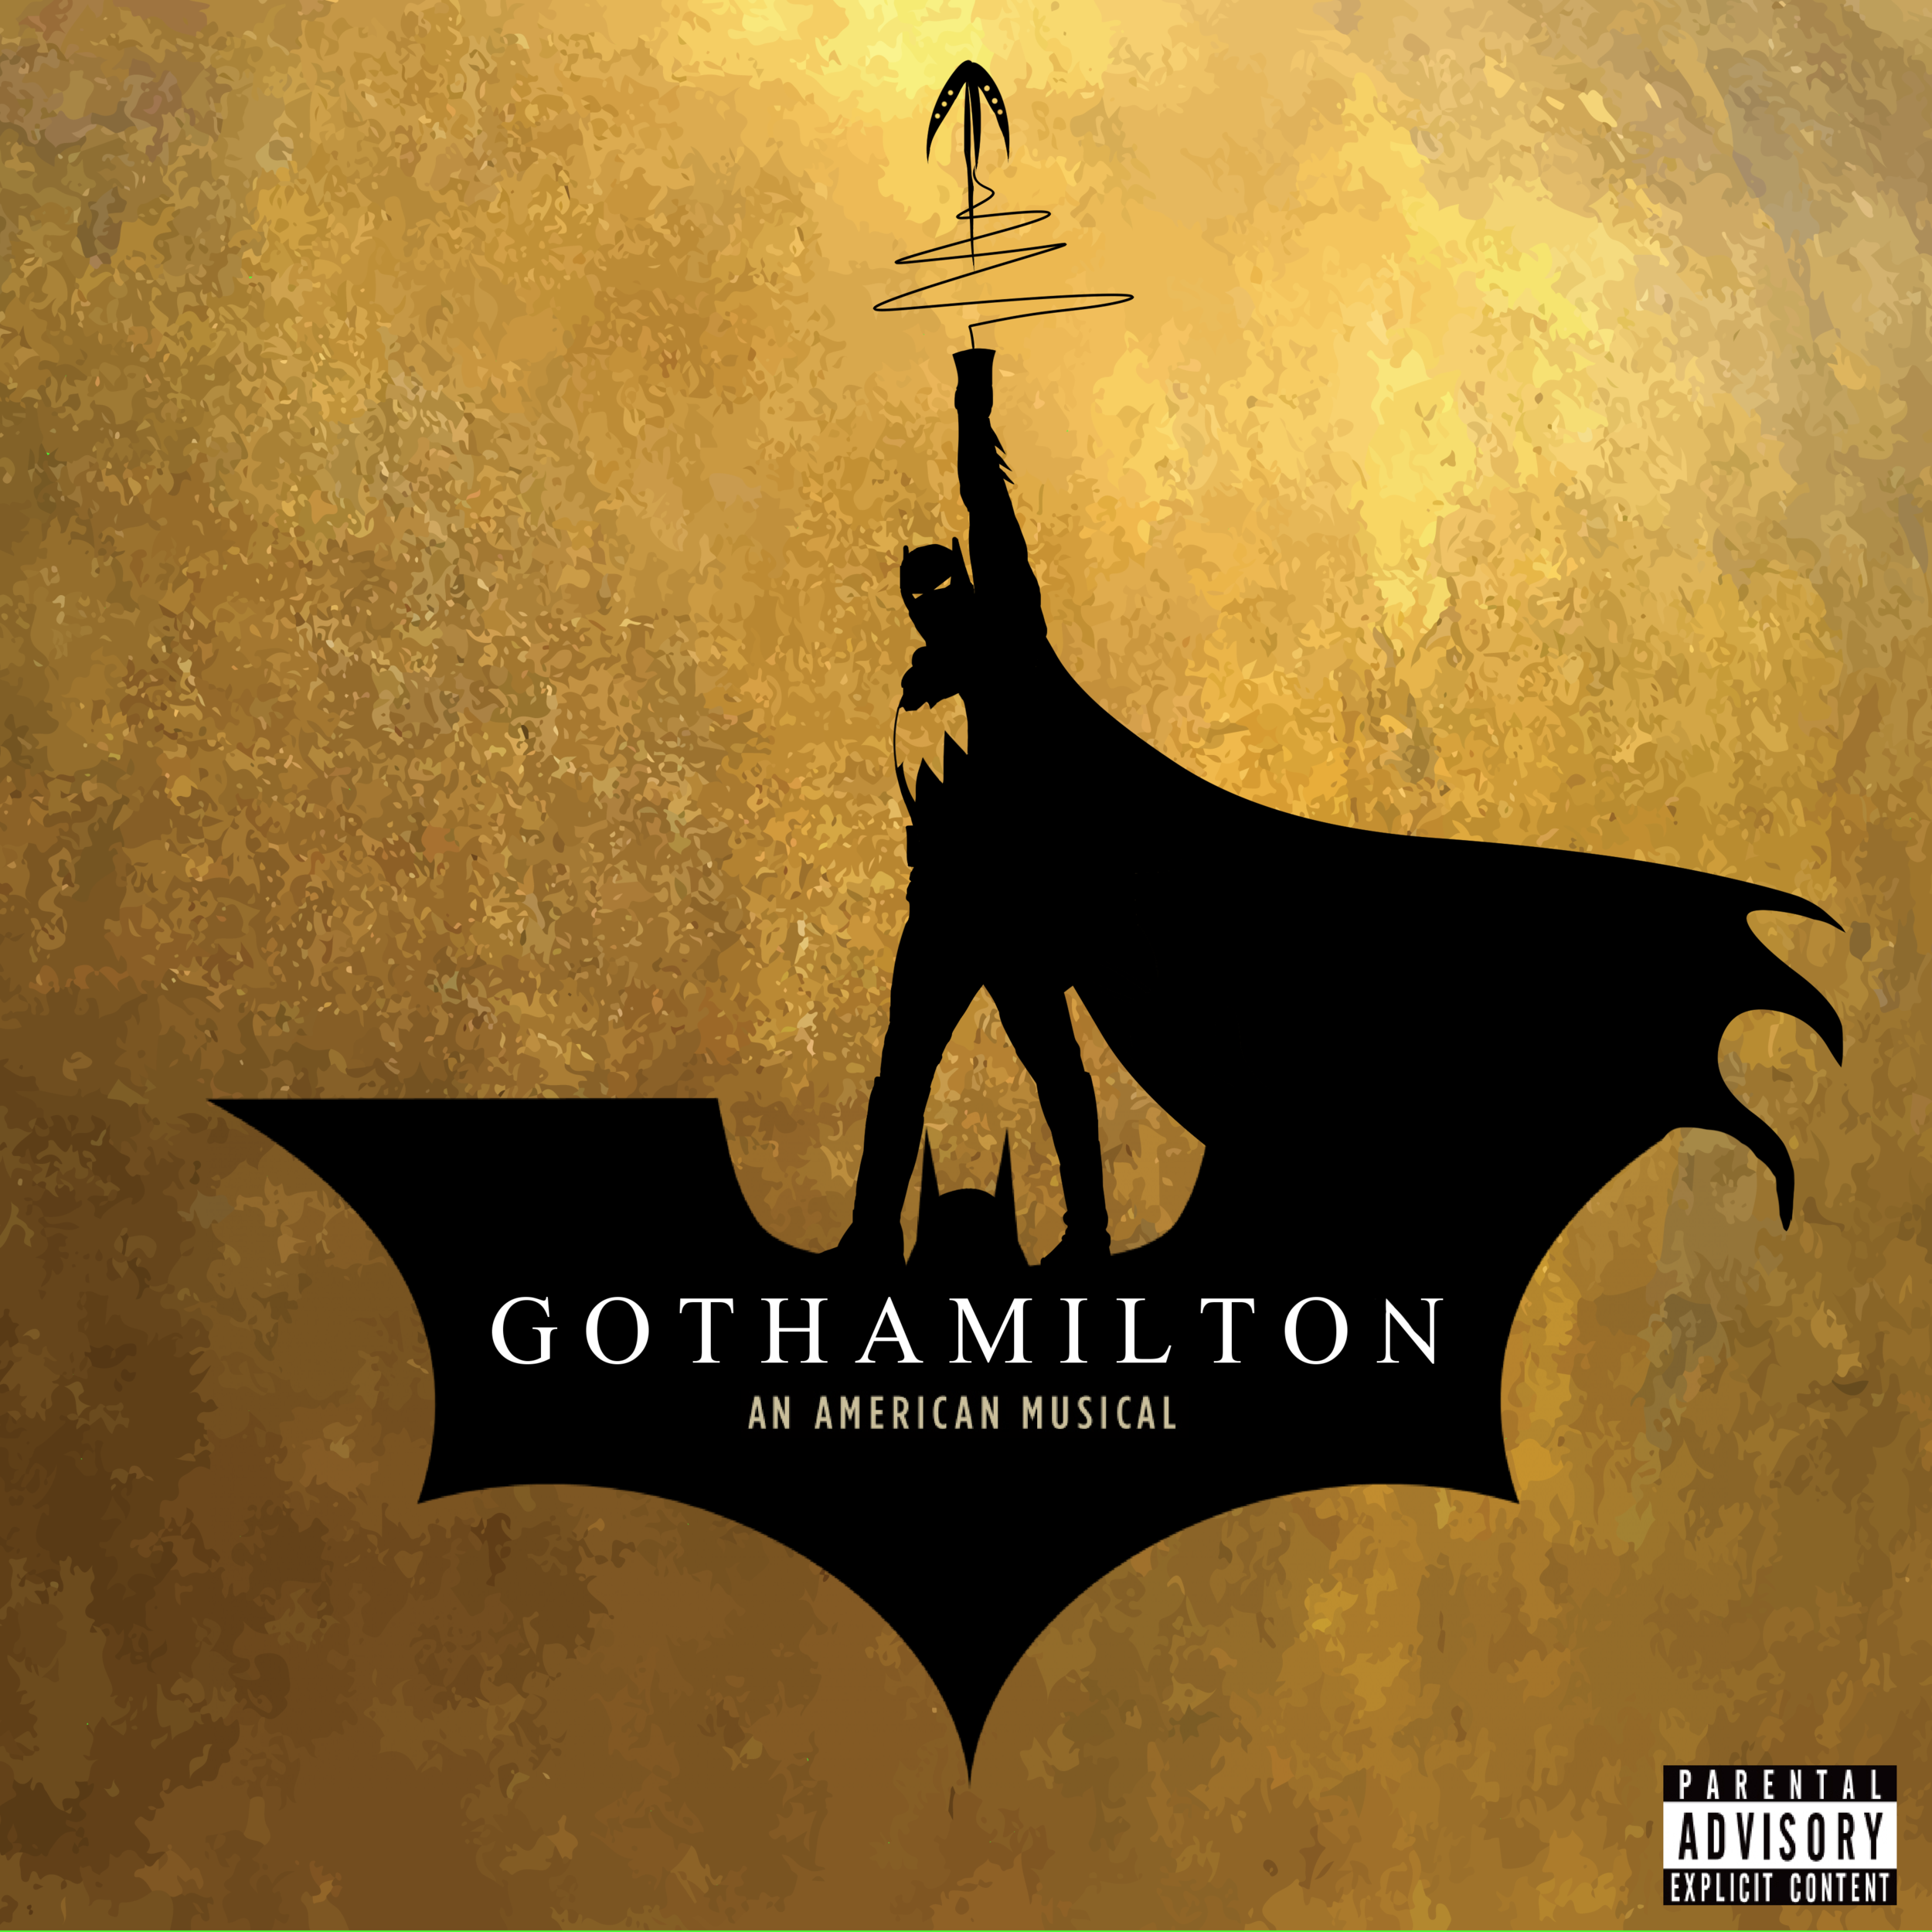 """gothamilton"" this isn't real please don't google gothamilton"